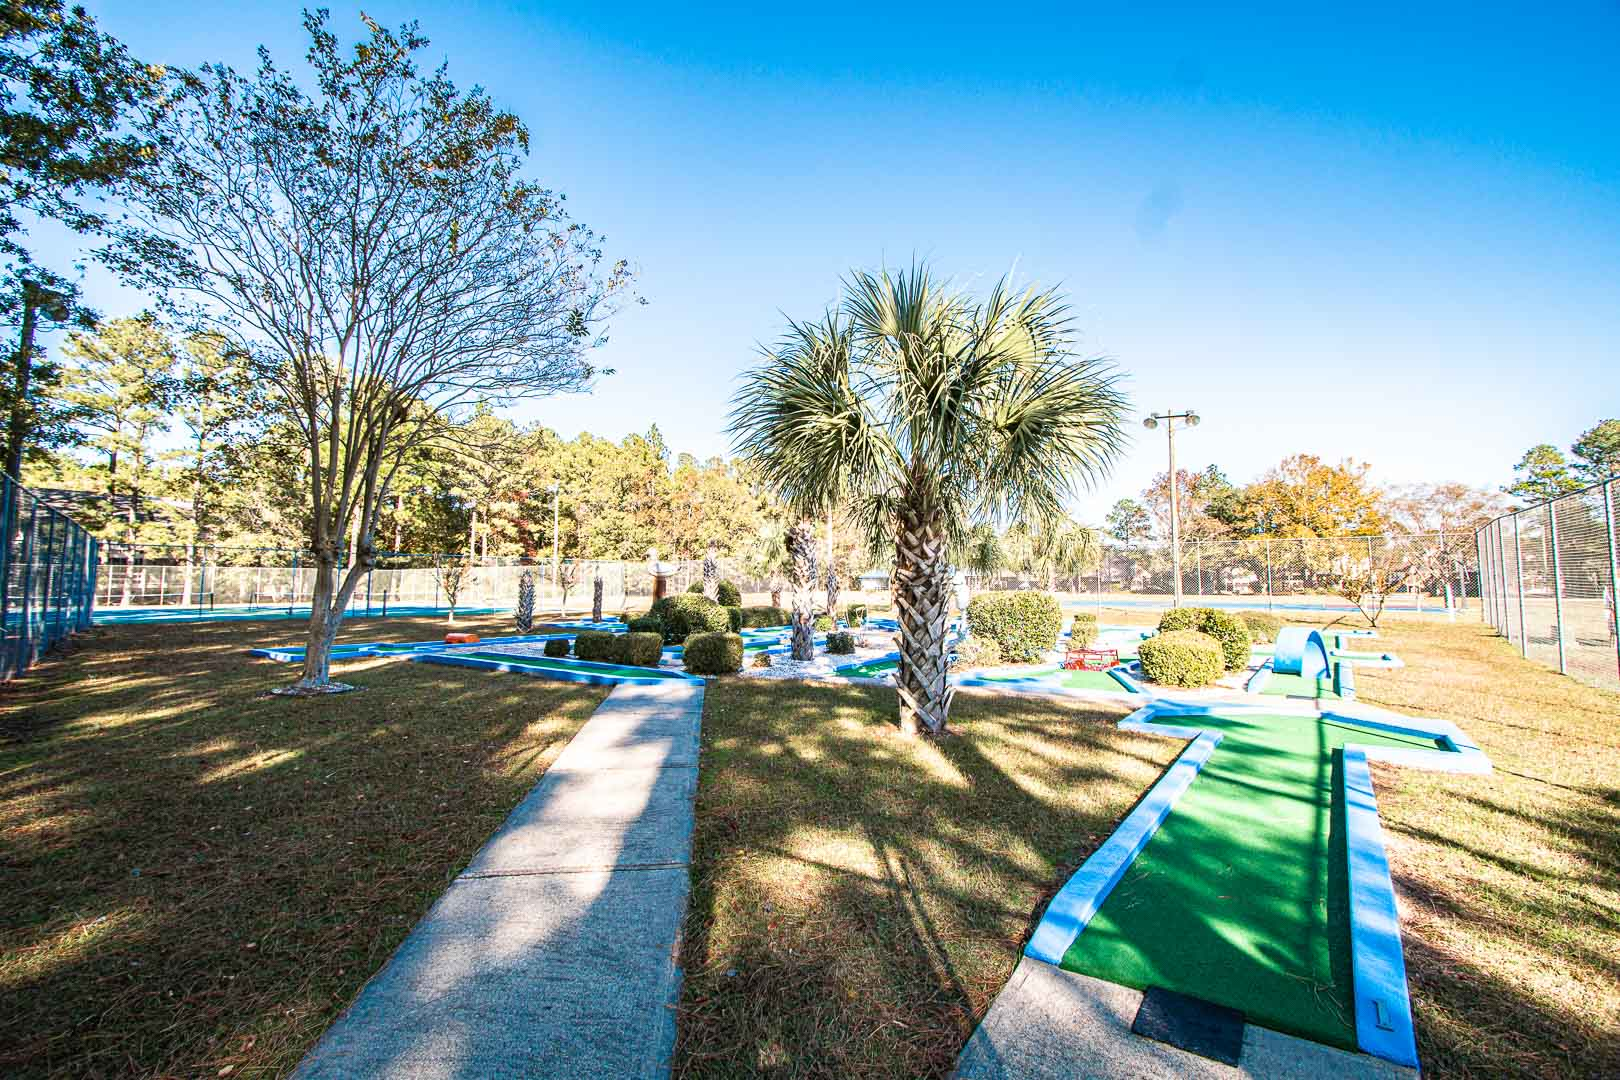 An outside mini golf course at VRI's Harbourside II in New Bern, North Carolina.